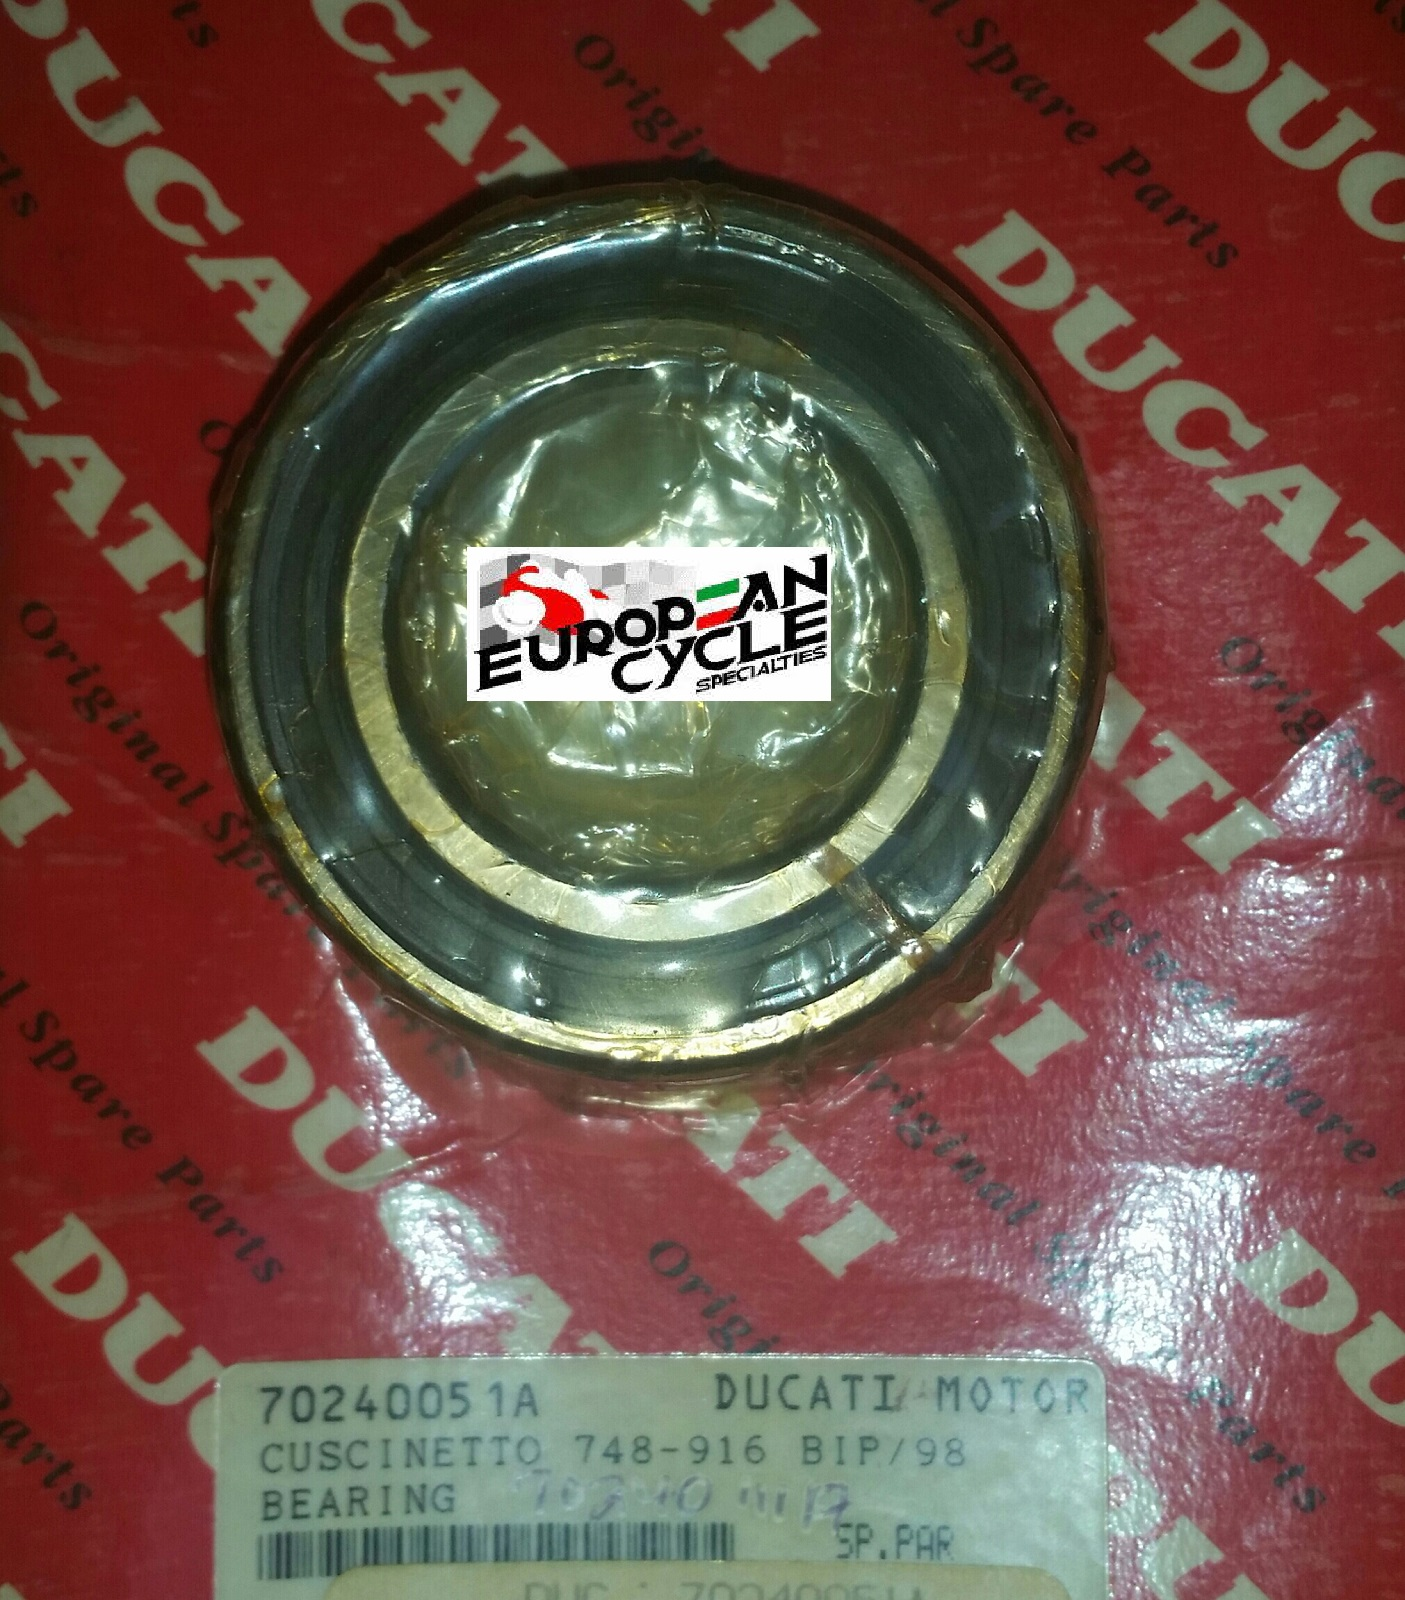 hight resolution of 1 pair oem ducati 748 916 double sealed wheel bearings measuring 35x62x14mm each also ducati 70240051a